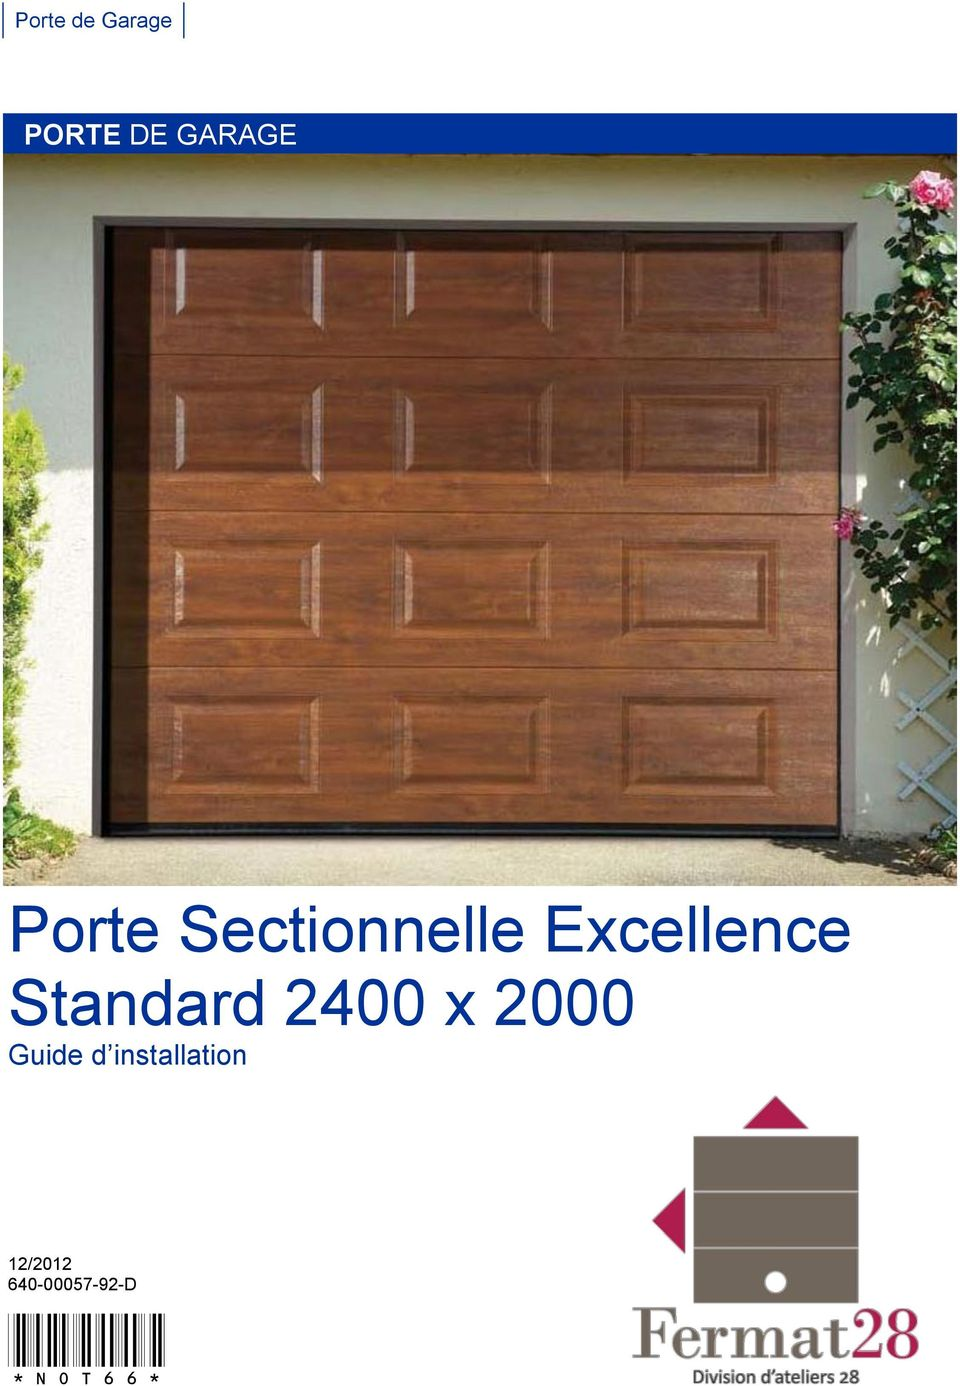 porte de garage porte de garage porte sectionnelle excellence standard 2400 x 2000 guide d. Black Bedroom Furniture Sets. Home Design Ideas